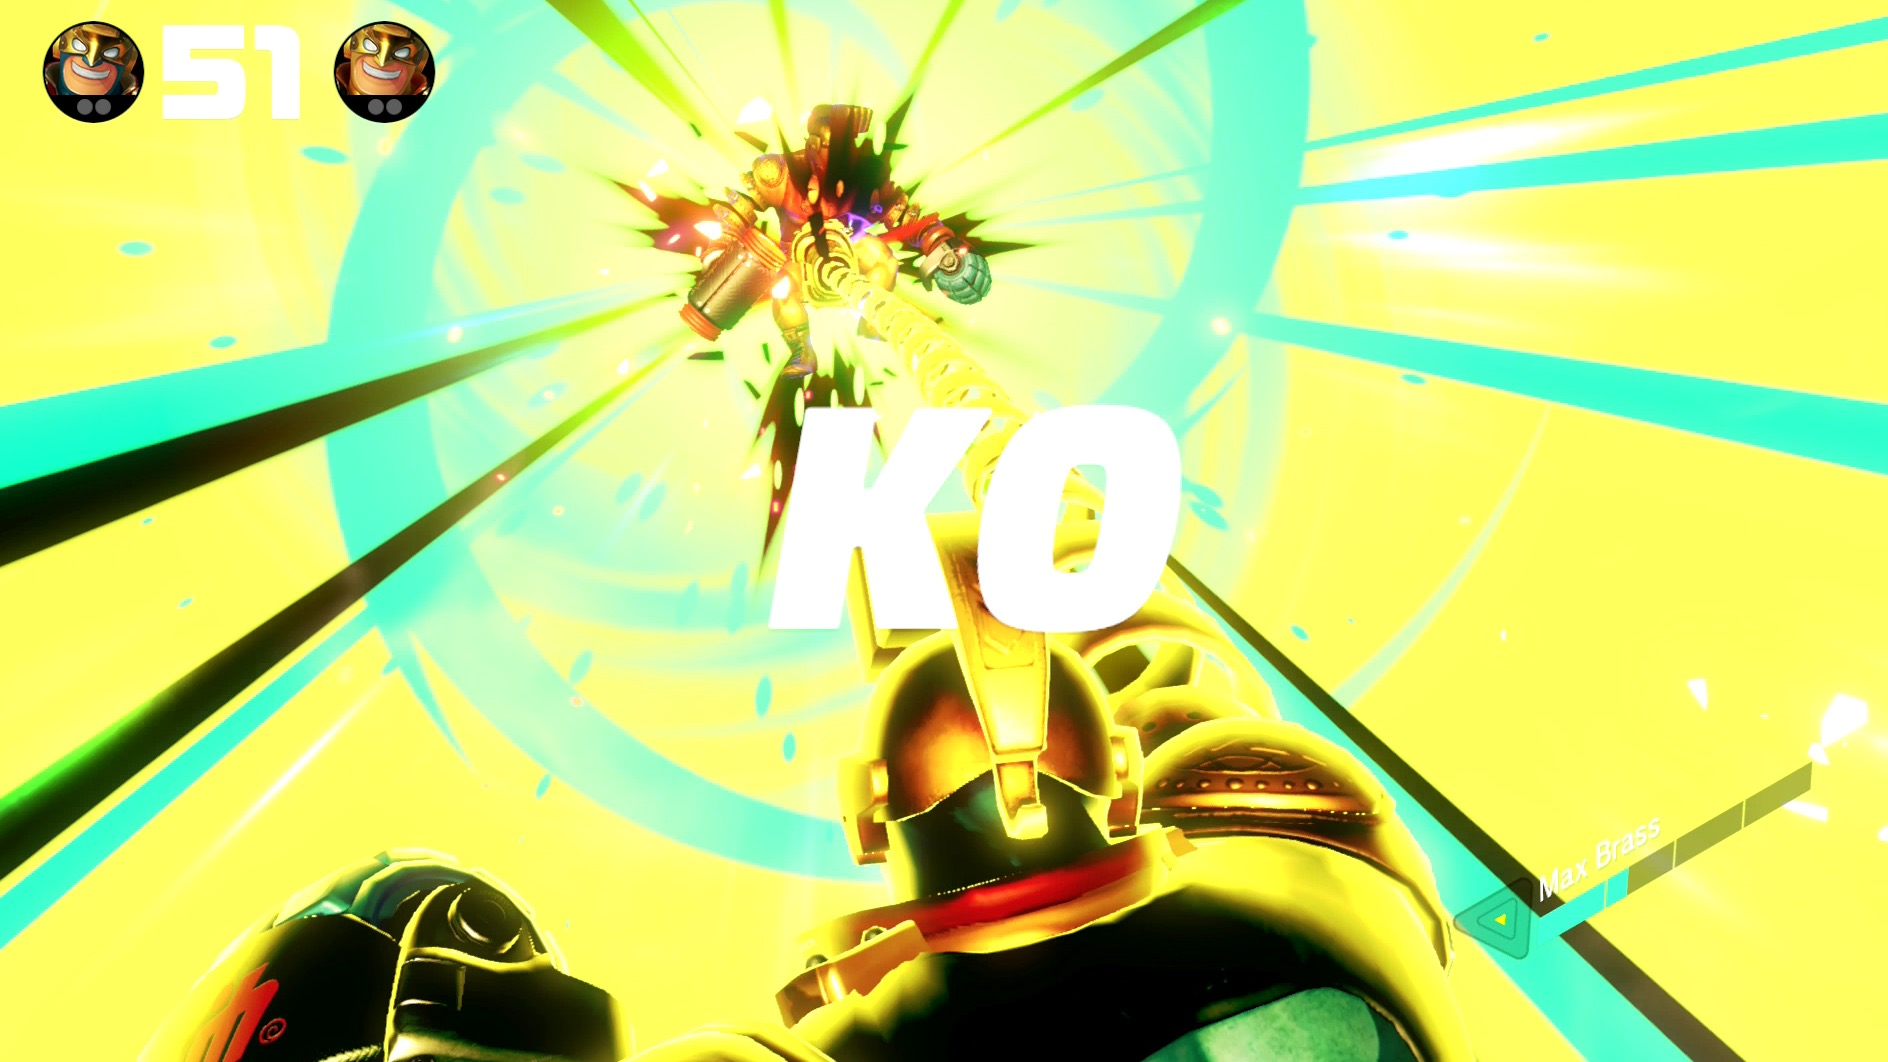 Arms update version 2.0 adds Max Brass and a new versus mode